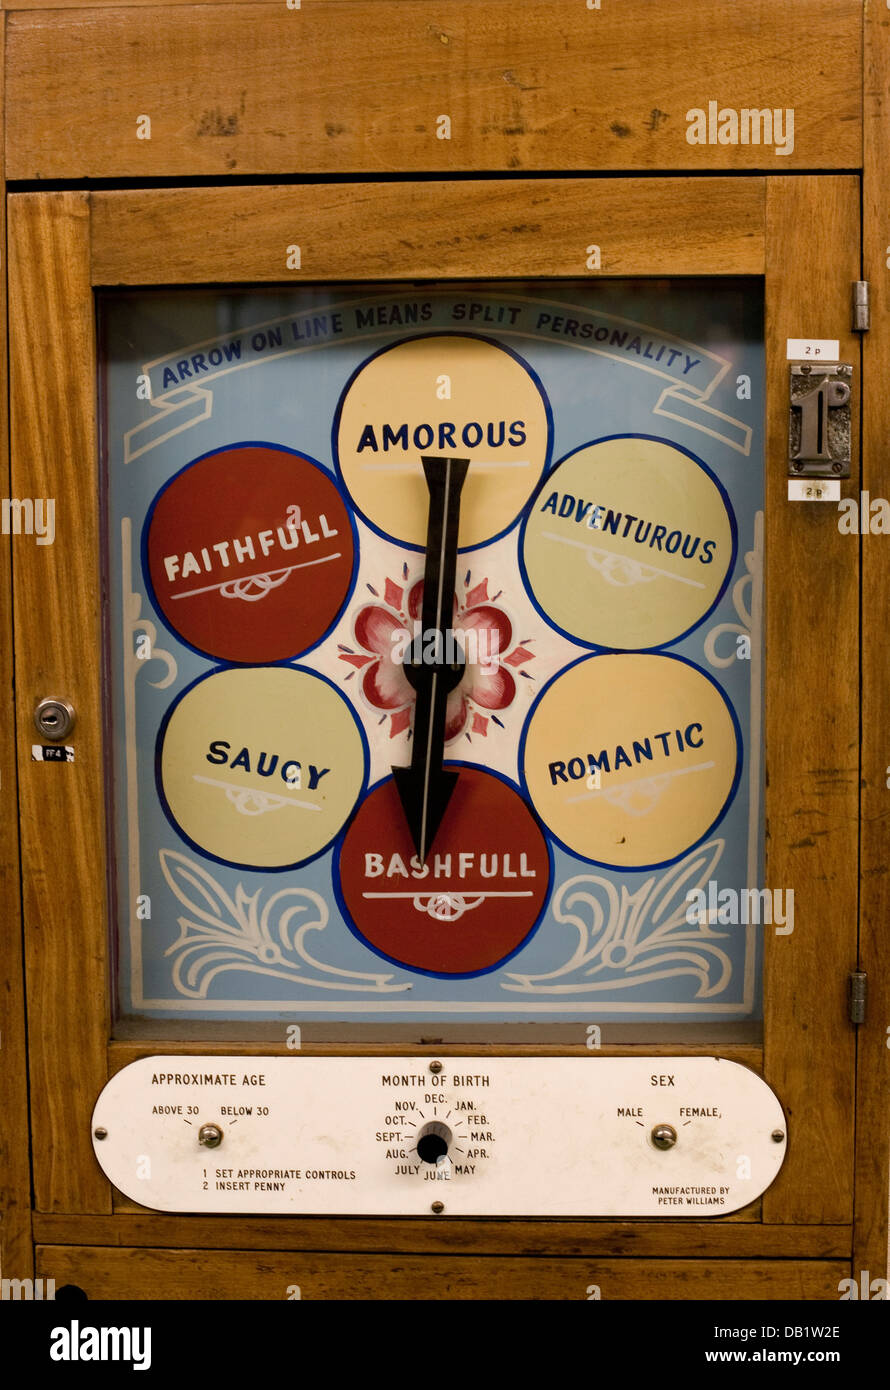 Traditional arcade game for personality checking - Stock Image